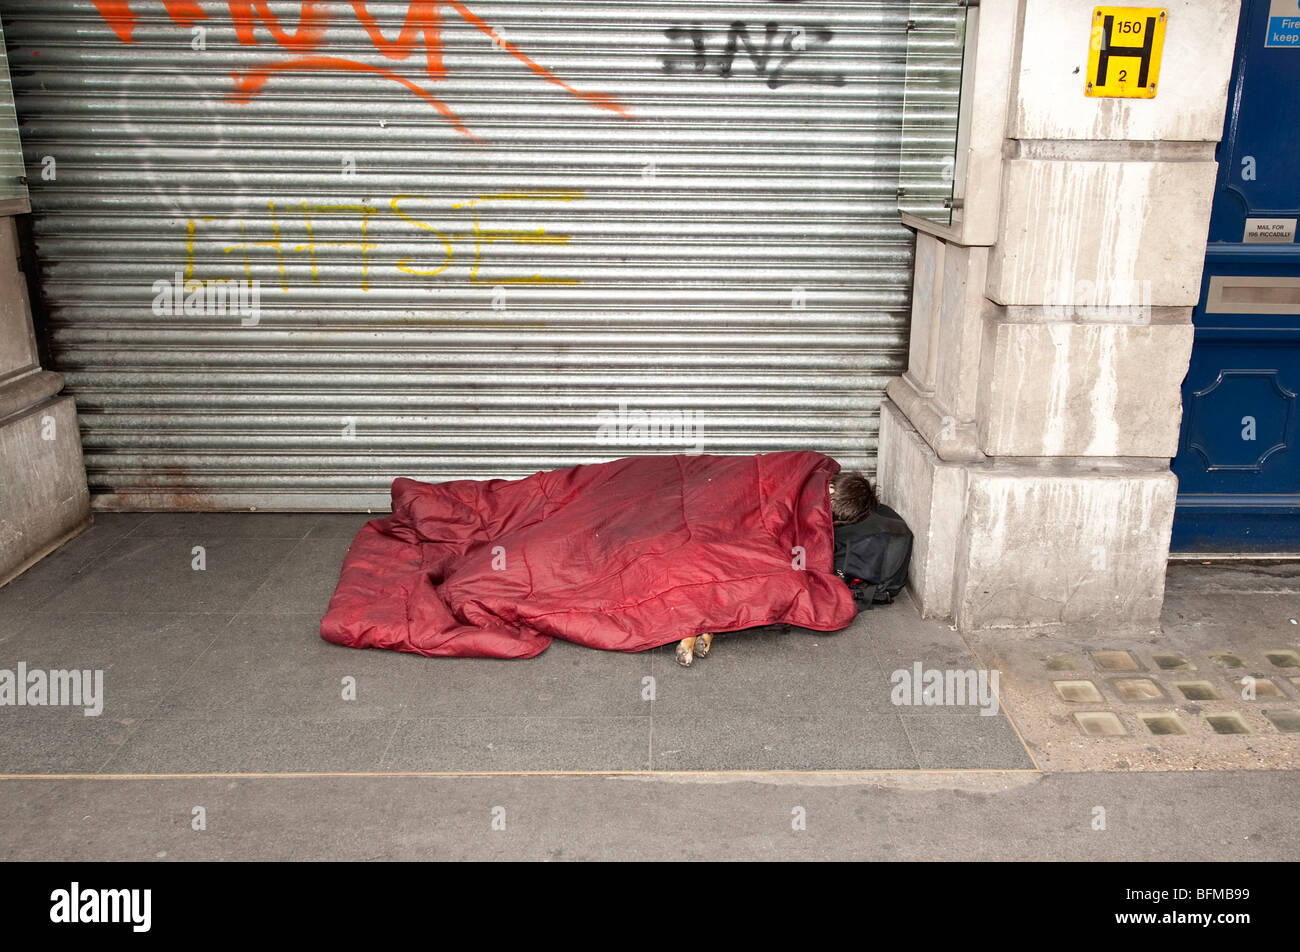 A person with dog  sleeping outside closed shop - Stock Image